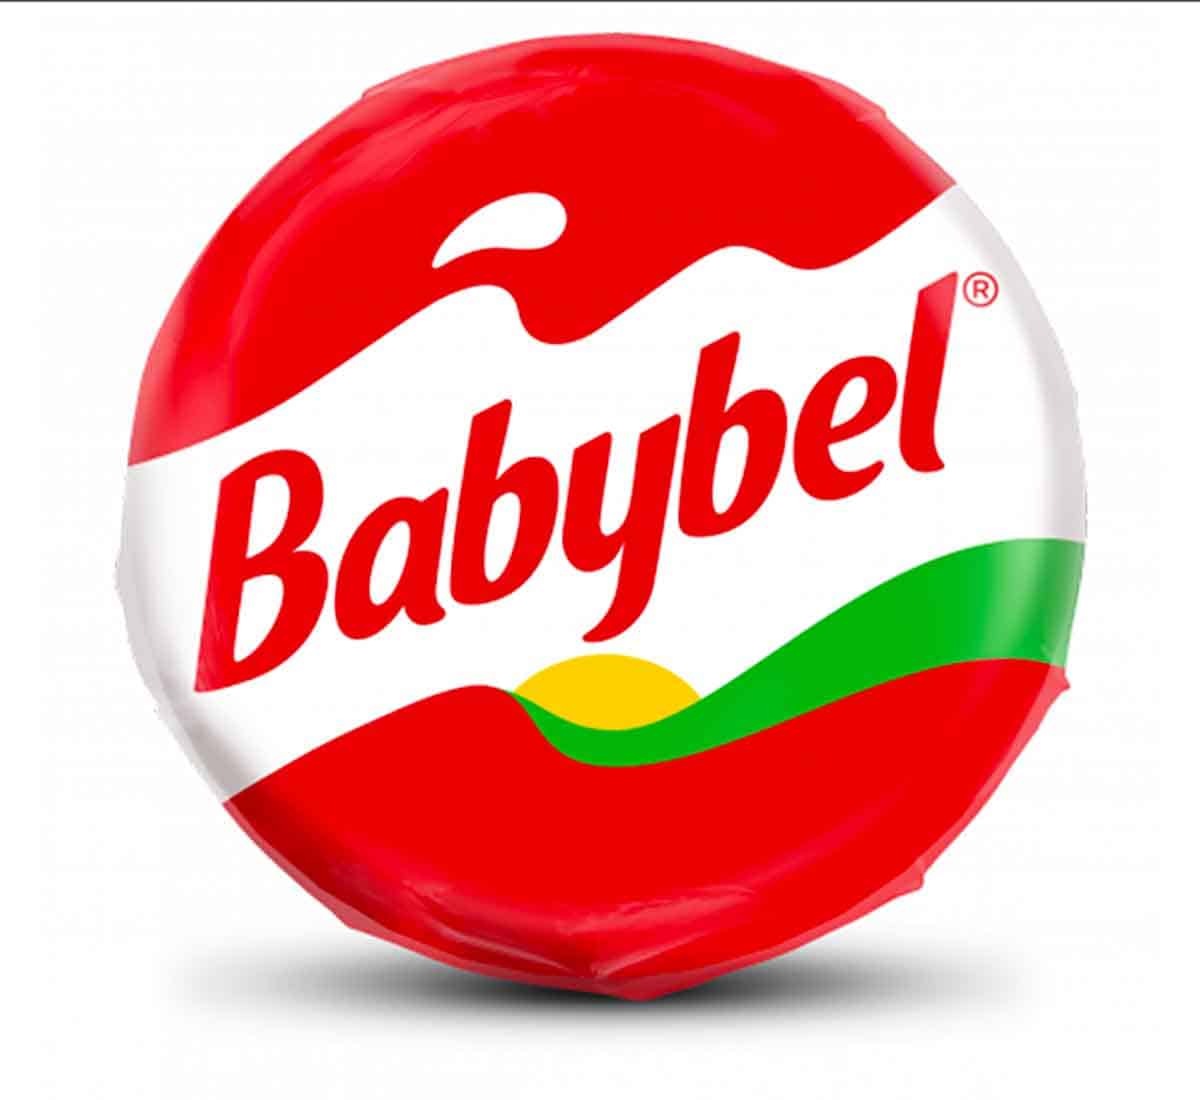 A whole piece of babybel cheese.